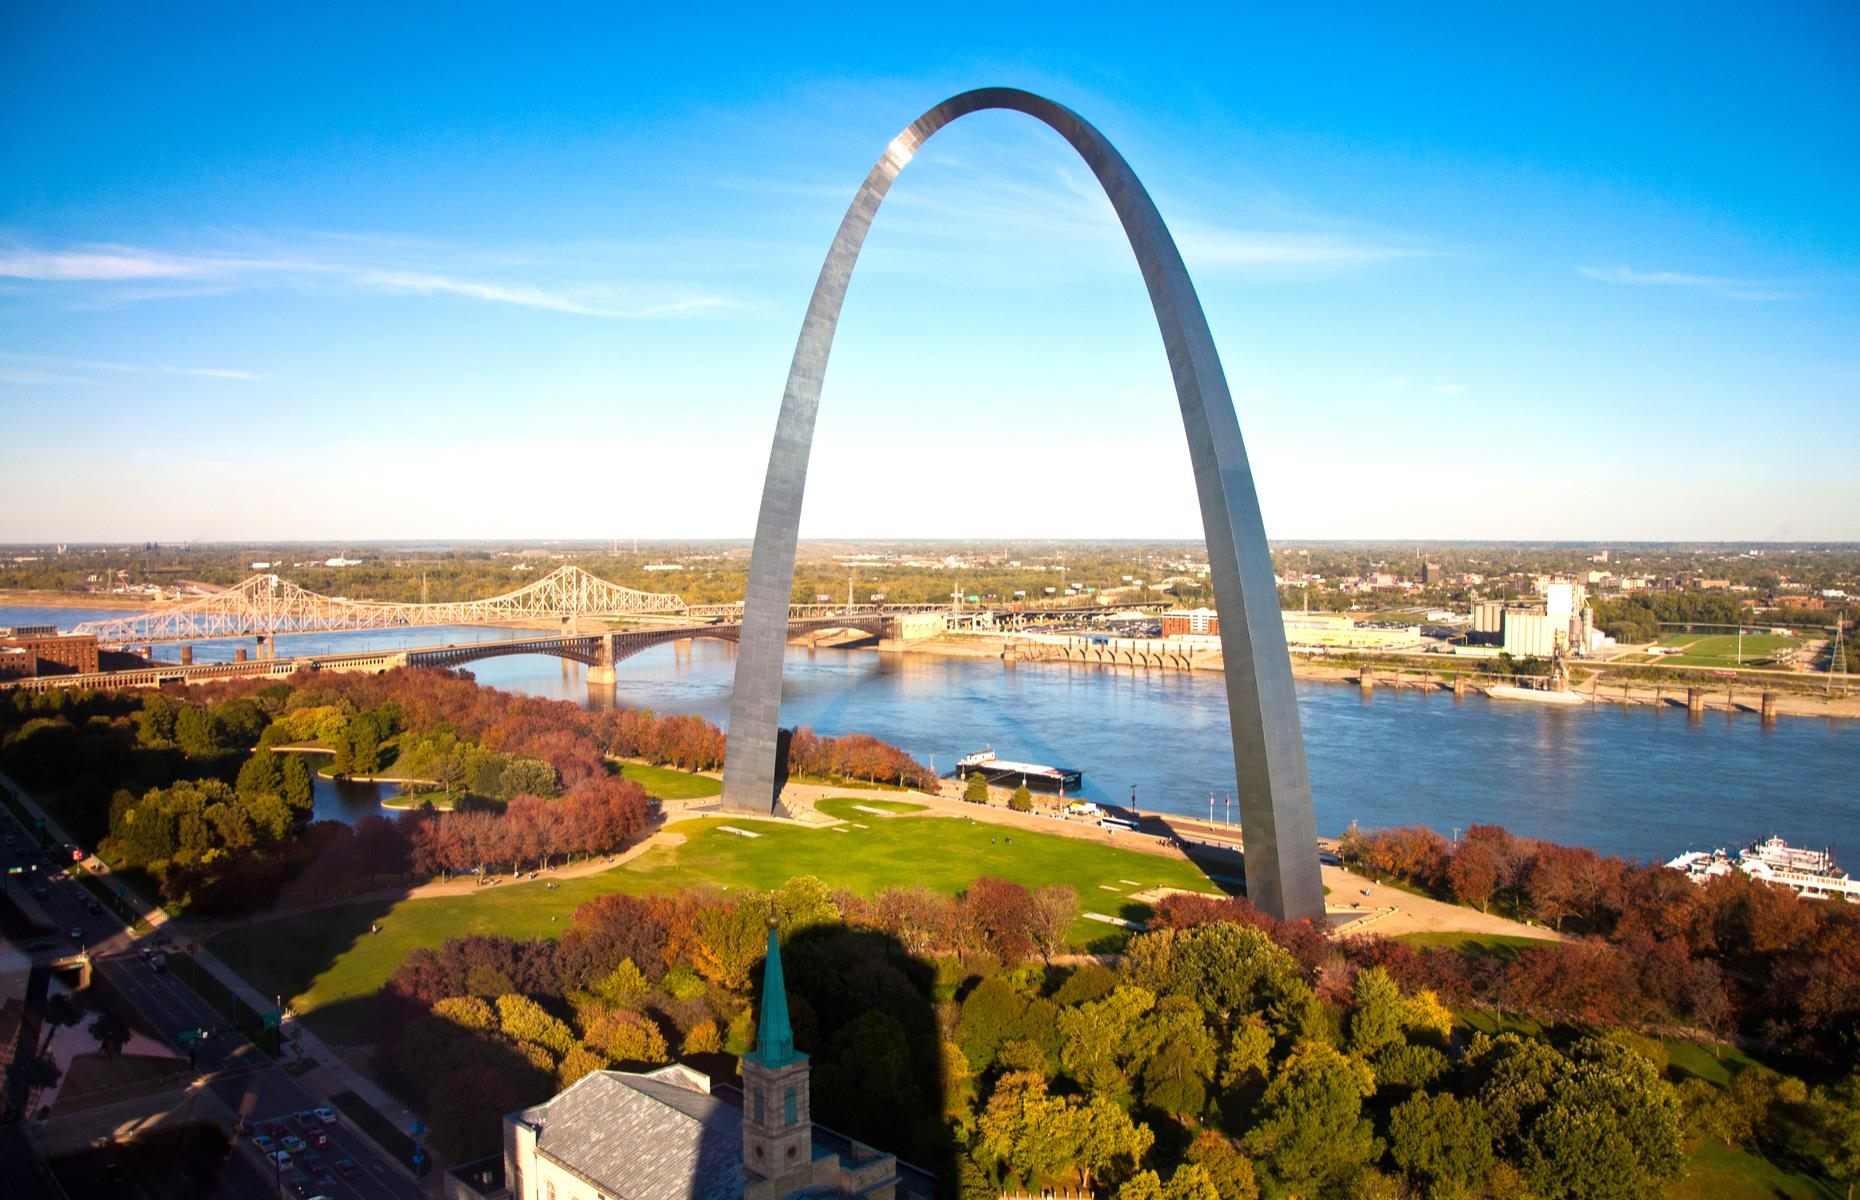 Slide 6 of 31: You can't miss this mammoth arch presiding over St Louis' waterfront – in fact, it's the tallest man-made structure in the States. But this giant is not without its secrets. It's said that, before the crucial keystone was hauled into place in the 1960s, a time capsule was welded into it. The capsule purportedly contains the signatures of more than 760,000 residents, as well as other unidentified items.